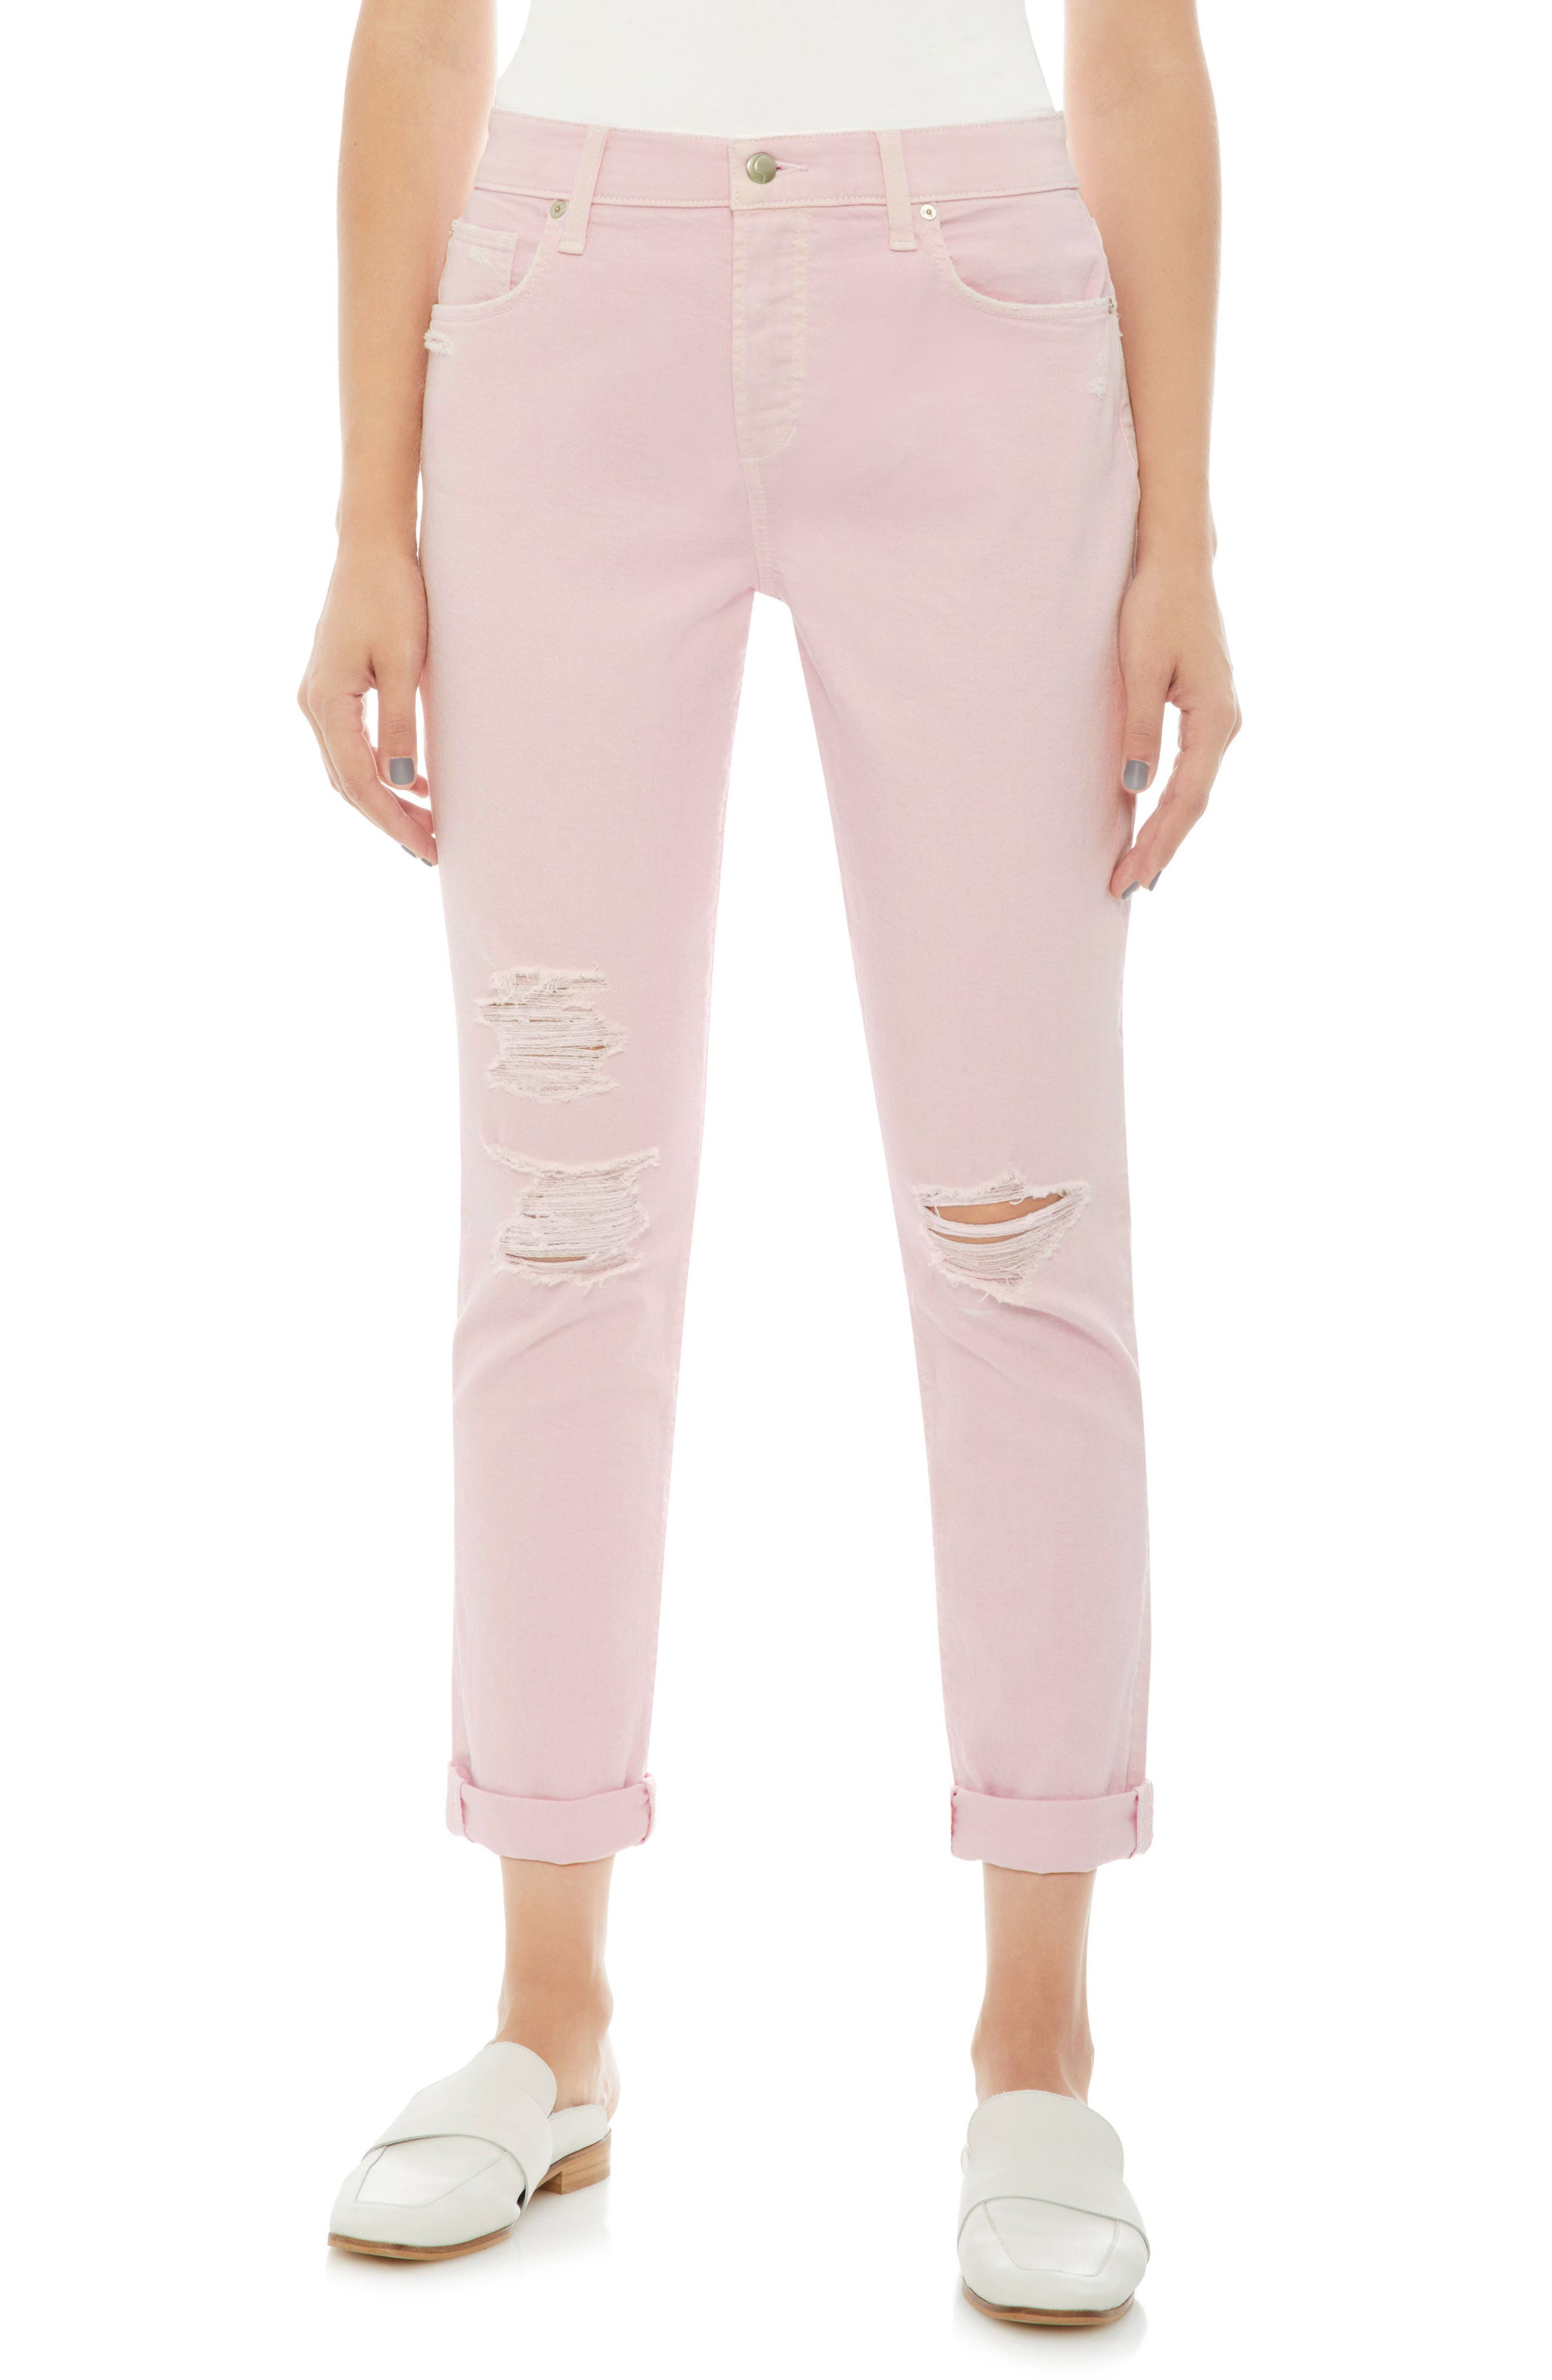 Smith Ripped High Waist Crop Slim Jeans,                             Main thumbnail 1, color,                             Parfait Pink